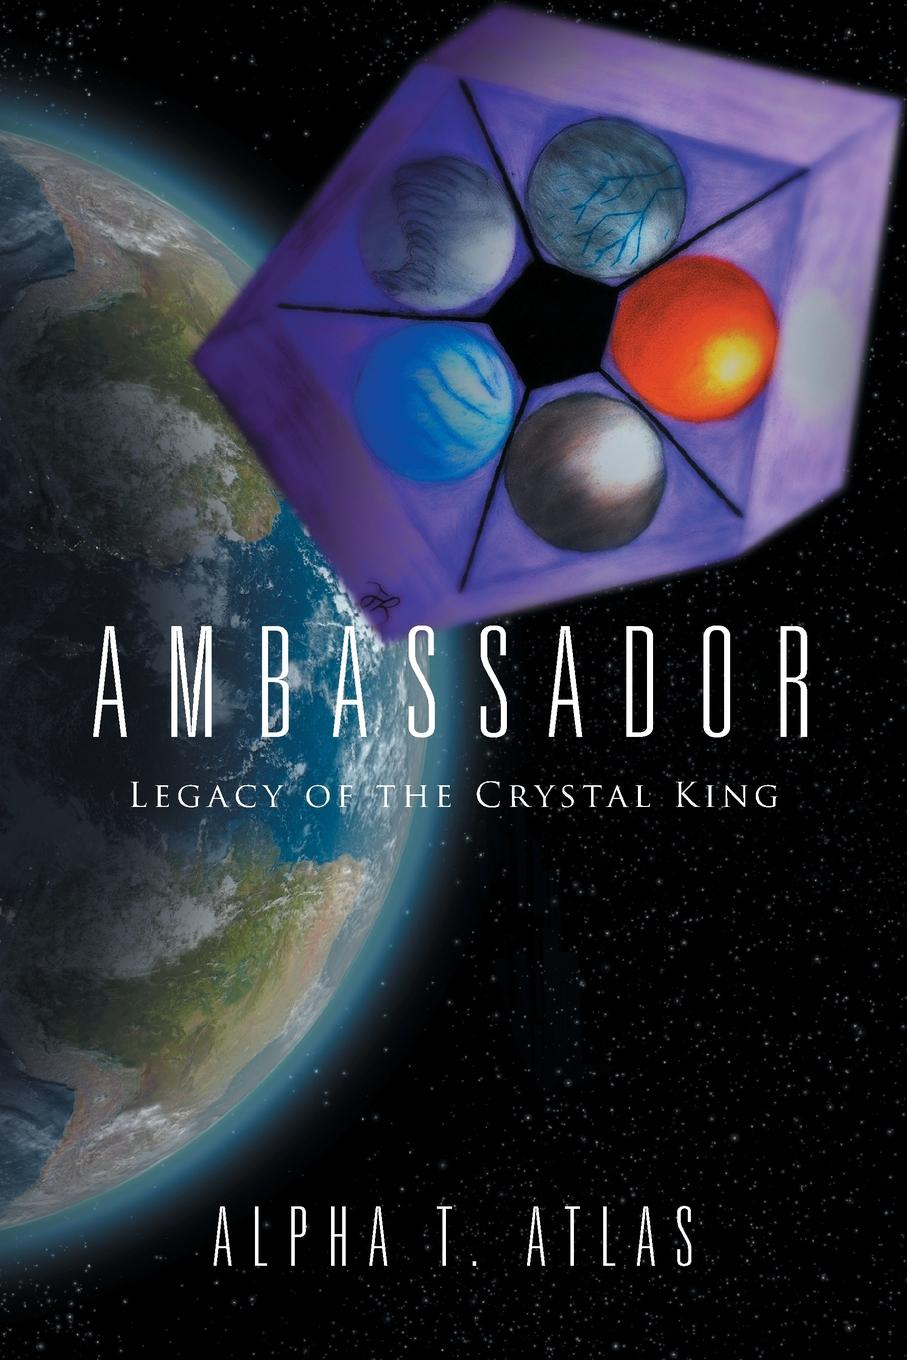 Alpha T. Atlas Ambassador. Legacy of the Crystal King alpha phi alpha a legacy of greatness the demands of transcendence